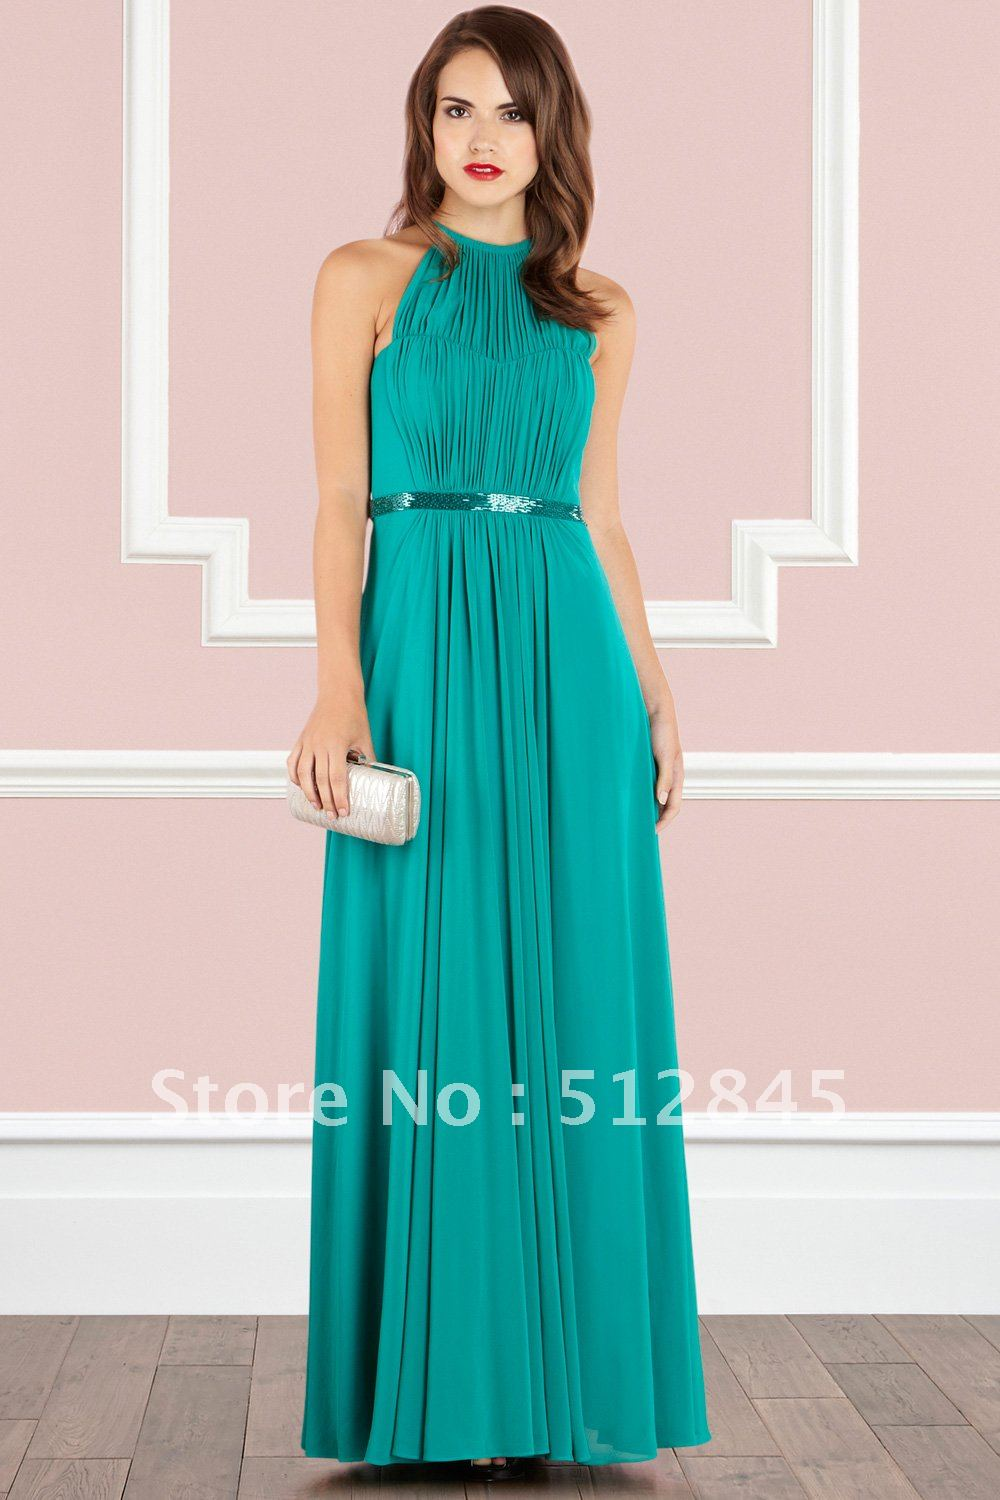 Jade Colored Bridesmaid Dresses - Wedding Dress Ideas